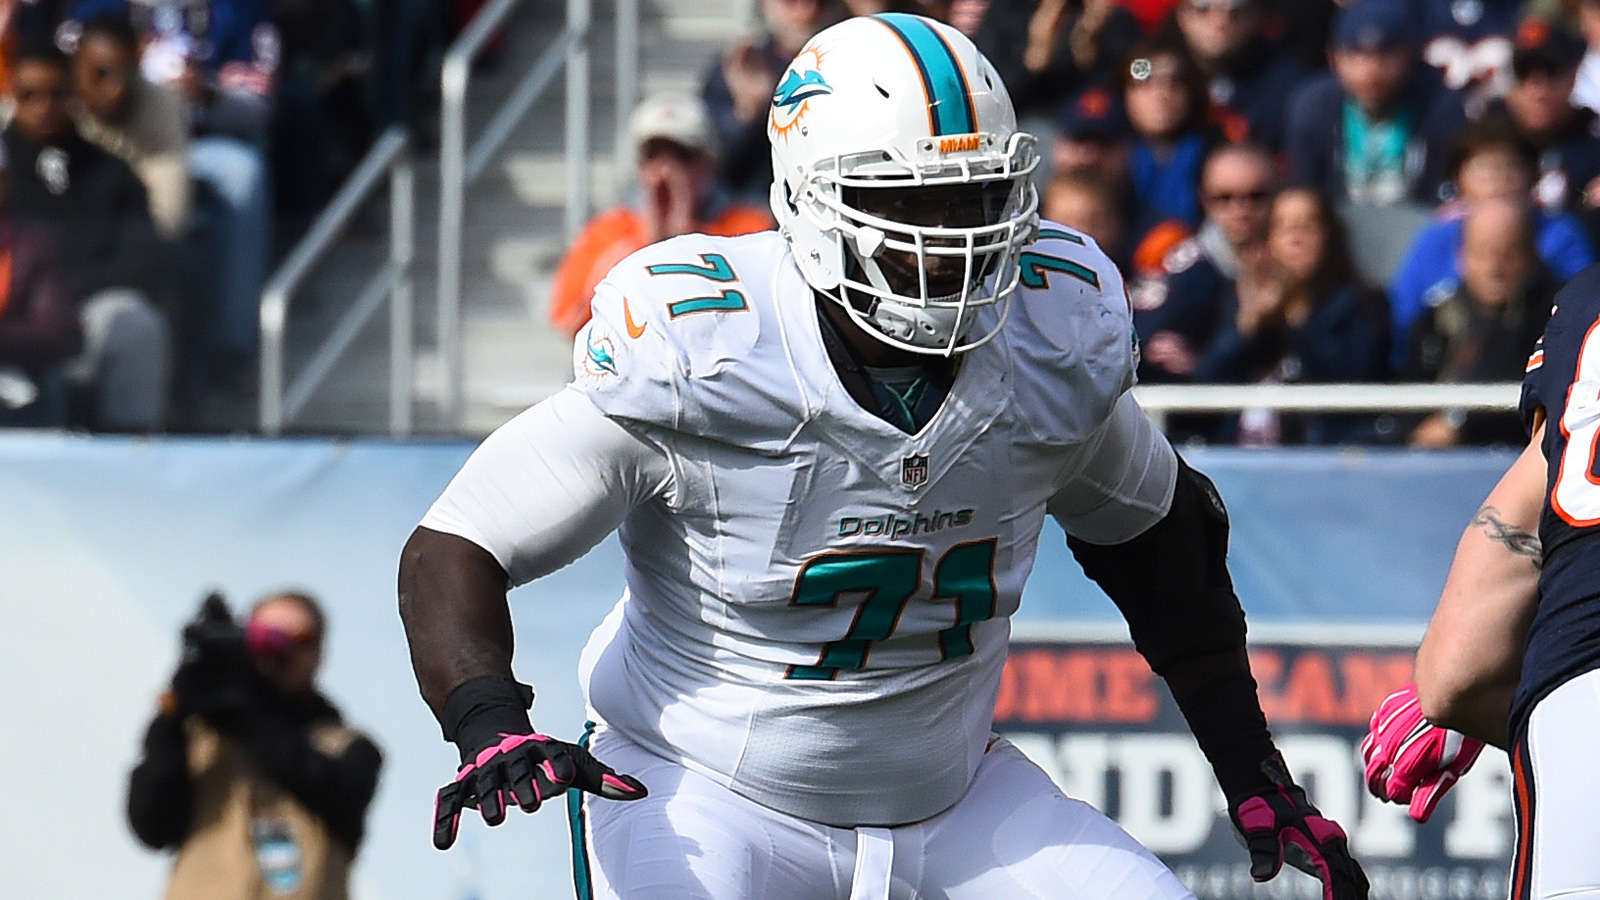 Miami Dolphins cut Mario Williams, hold off on Branden Albert